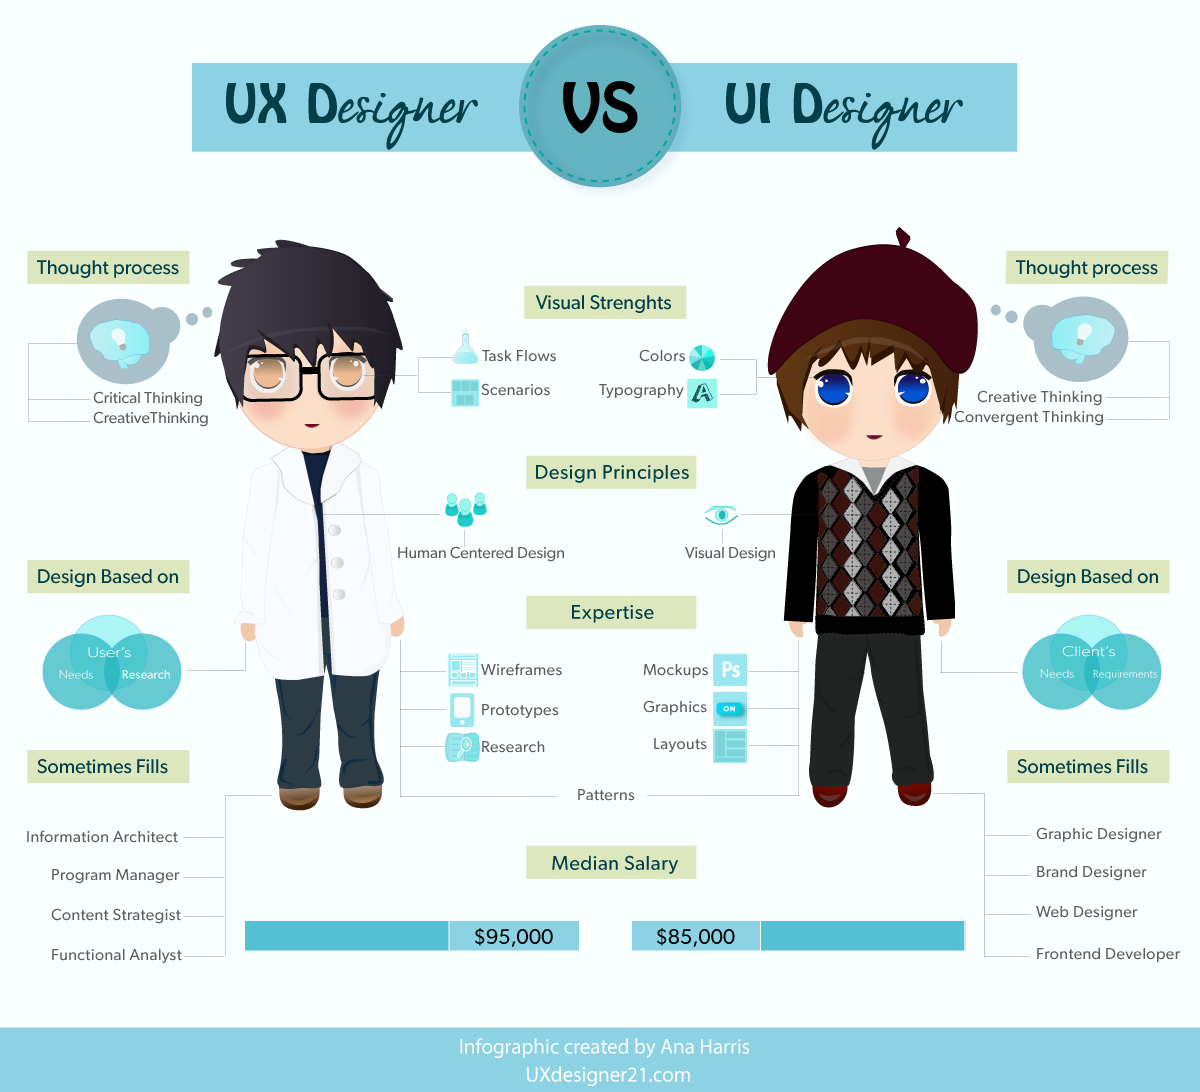 A ux designer compared to a ui designer